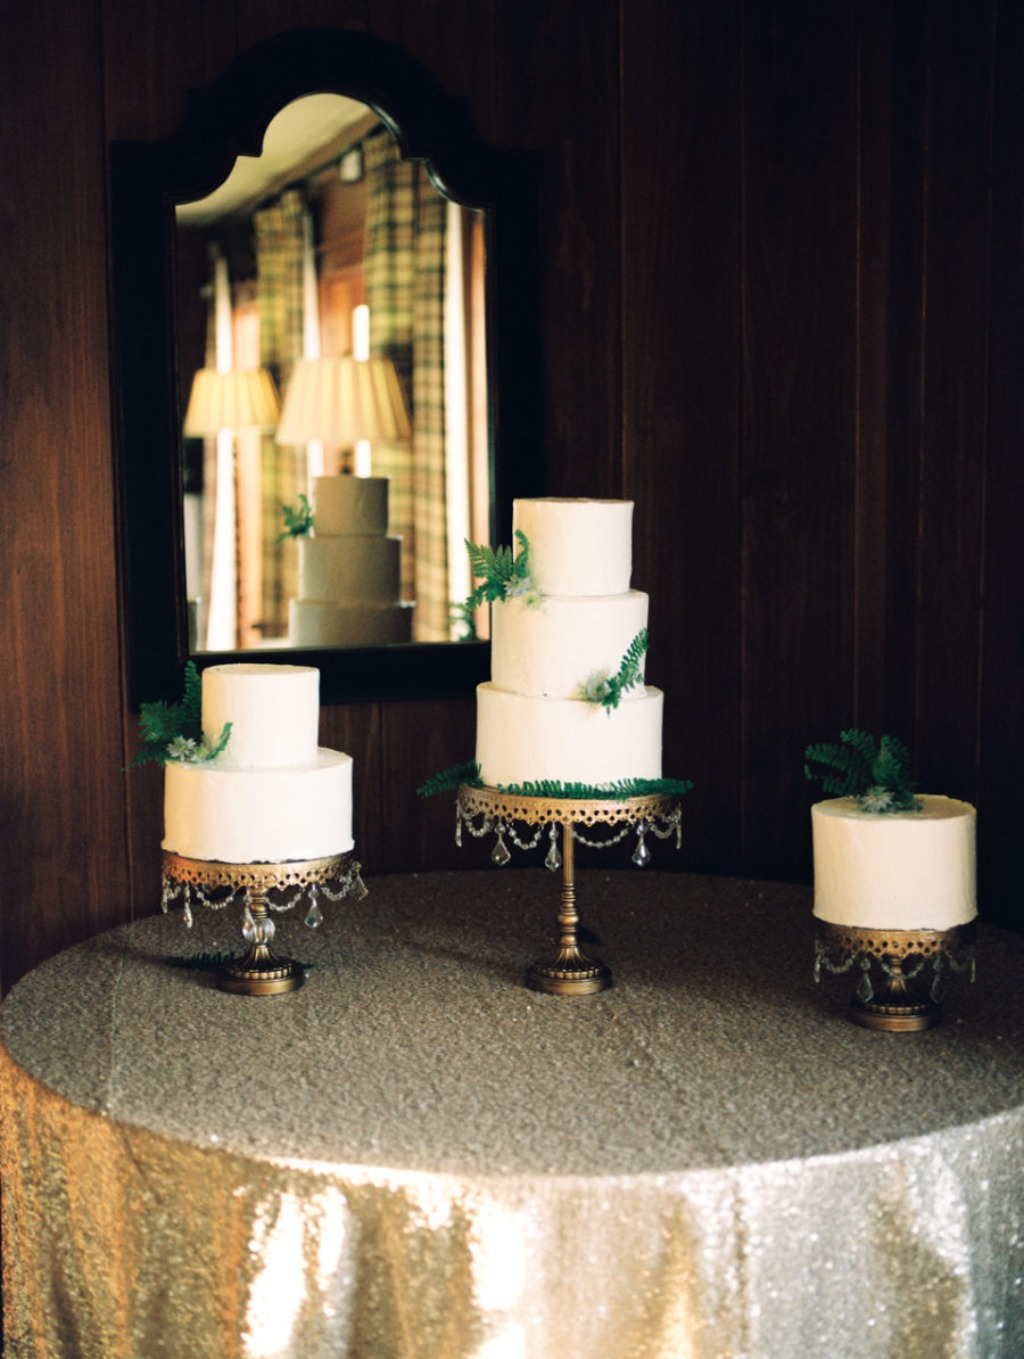 Wedding Cake Stands created by Opulent Treasures... Buy cake stands, dessert stands and more from our affordable collection of original